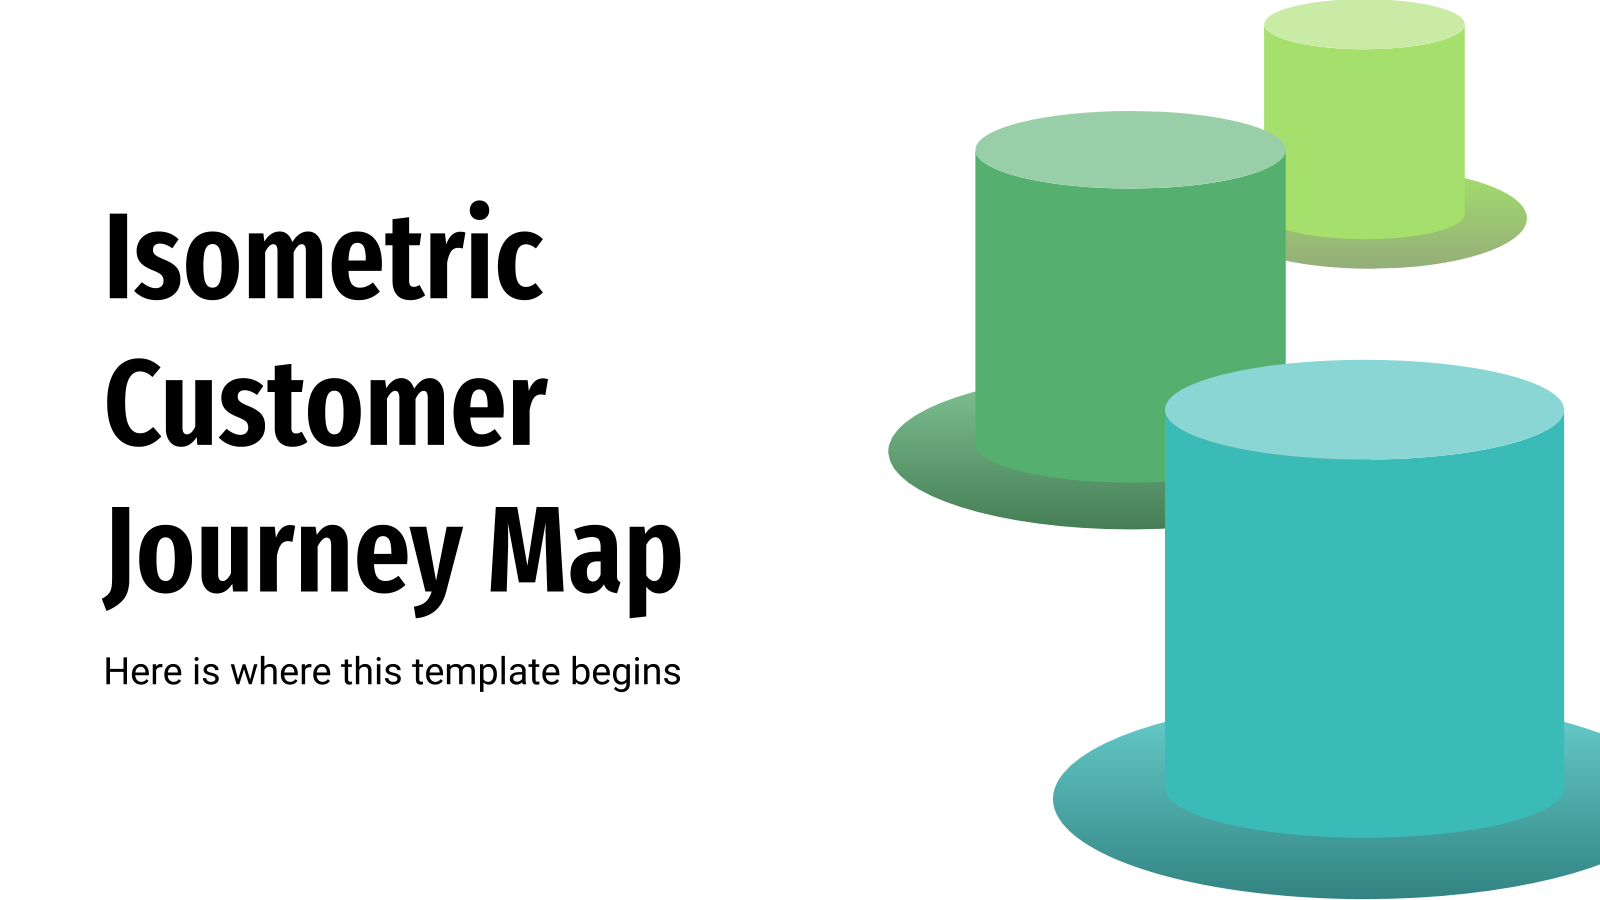 Isometric Customer Journey Map presentation template